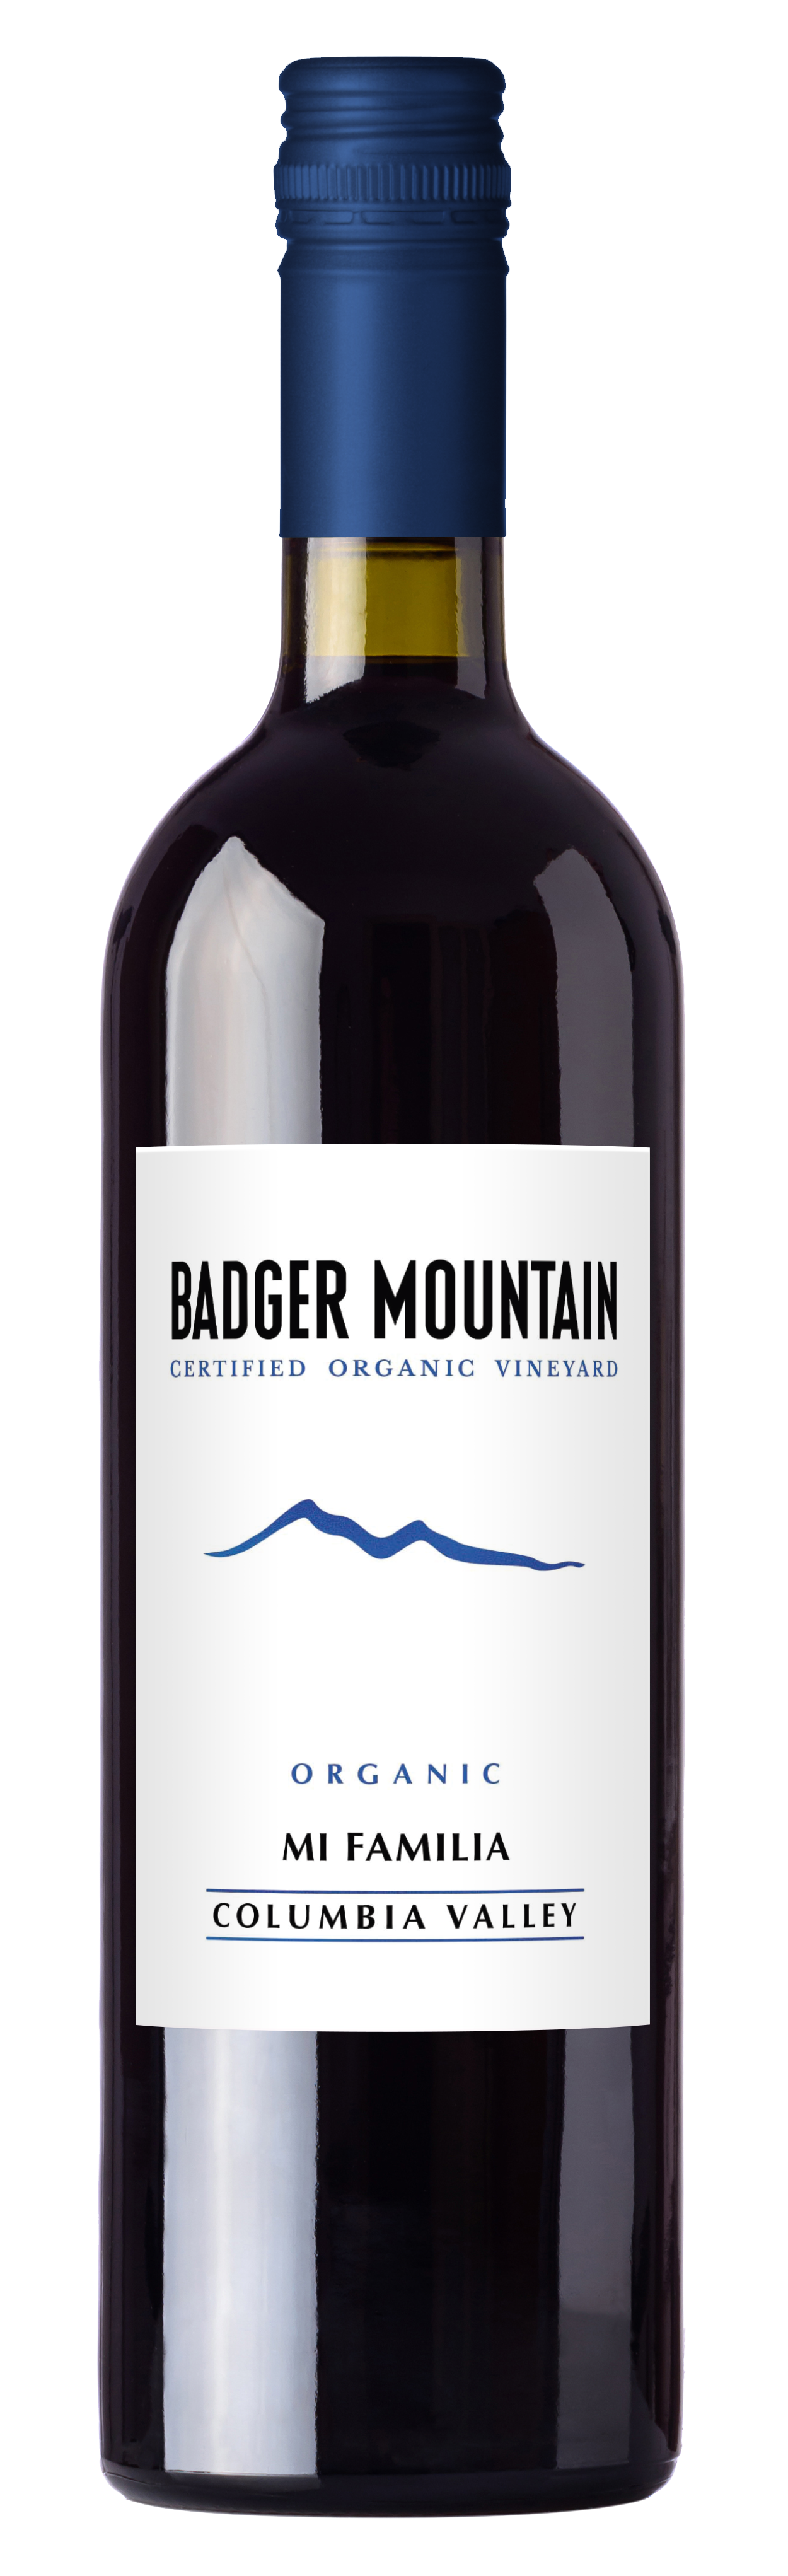 "2017 Badger Mountain Wine Club ""Mi Familia"" Red Blend: USDA Organic, No Sulfites Added"